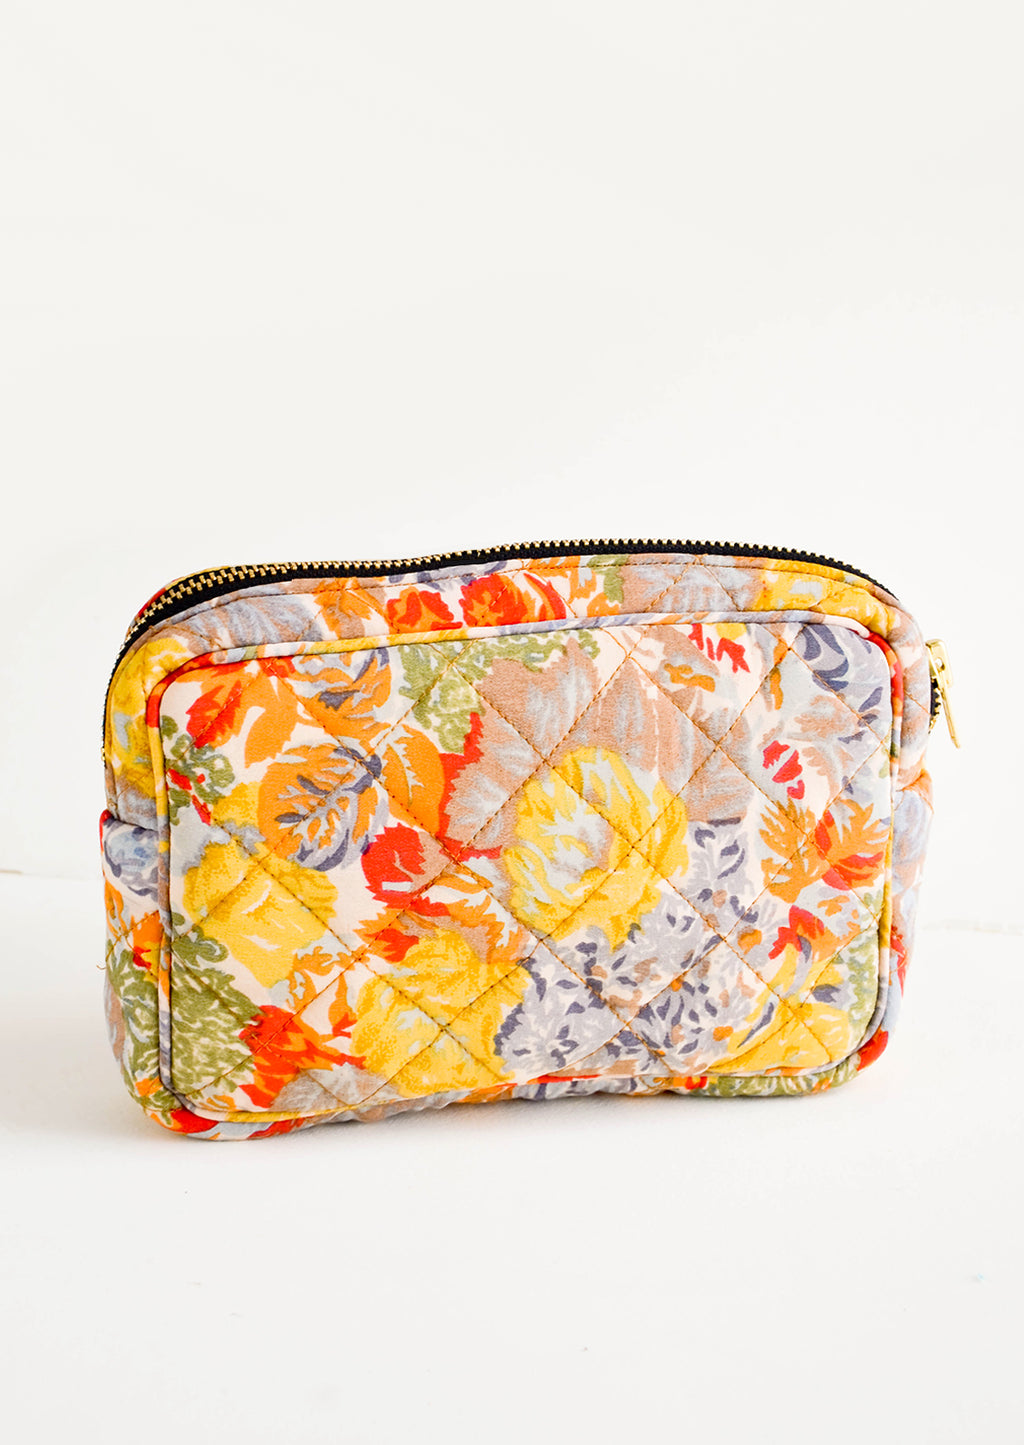 Small / Floral Multi: Flat and rectangular makeup travel bag with zip closure in colorful floral print